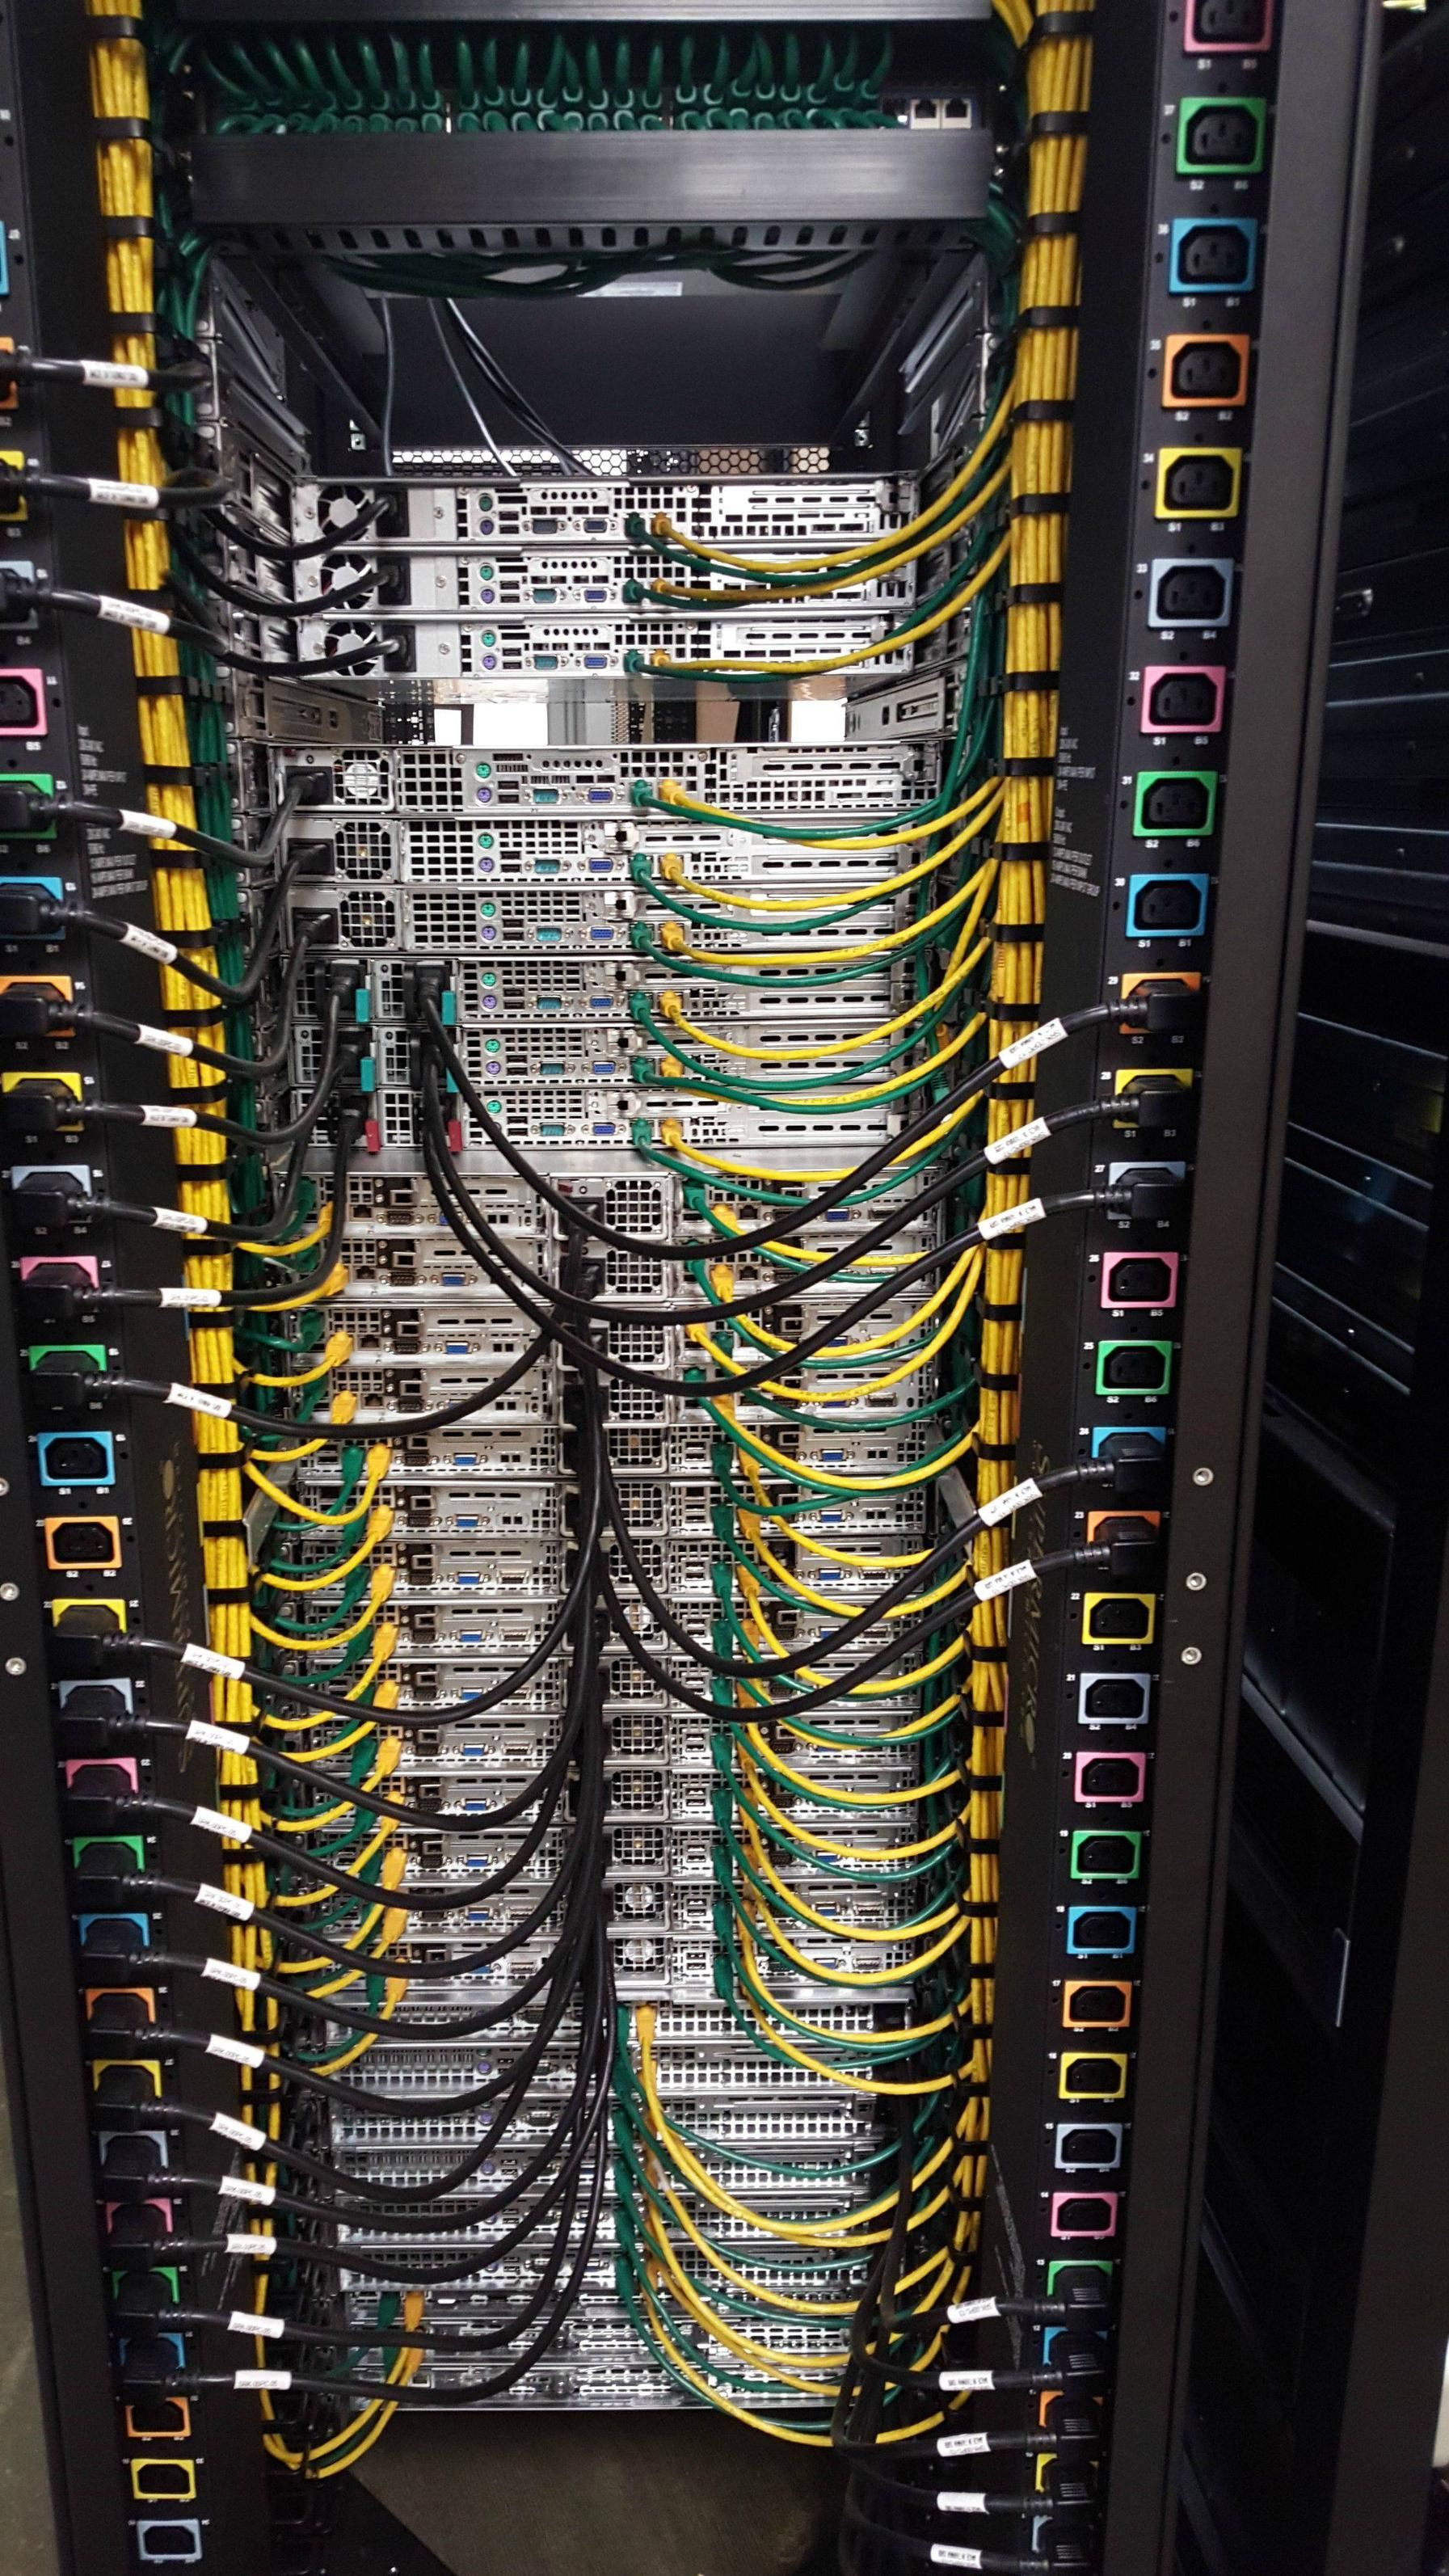 Network Wiring Diagram Room Cat 6a Cable Our Rack Team S Work Tech And Structured Cabling 5